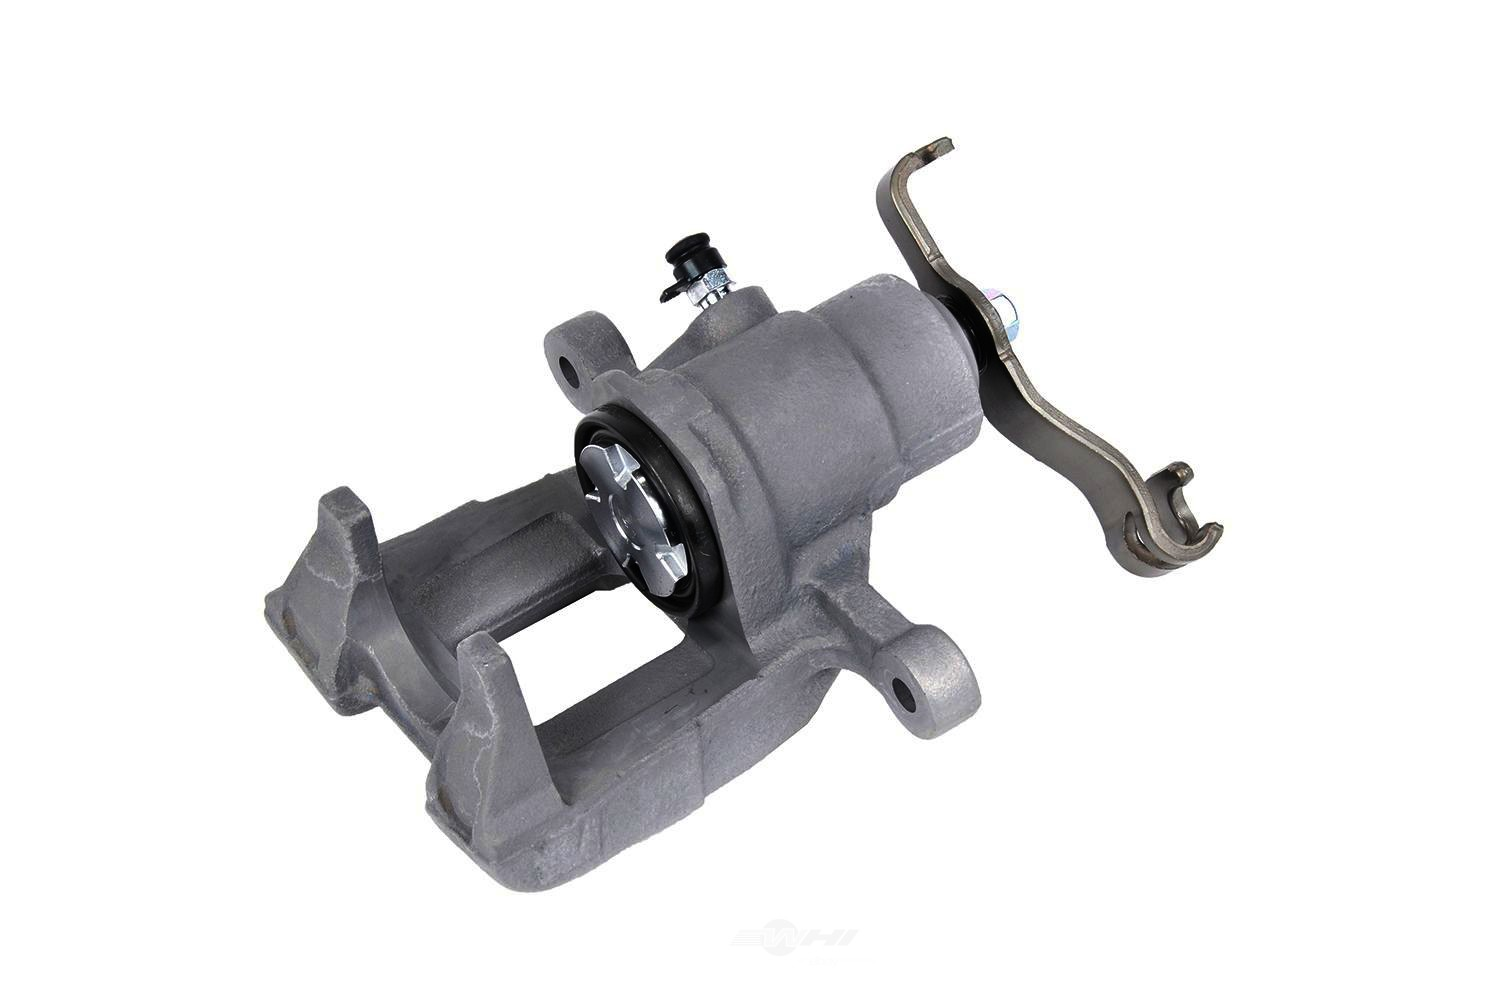 ACDELCO GM ORIGINAL EQUIPMENT - Disc Brake Caliper - DCB 13509994